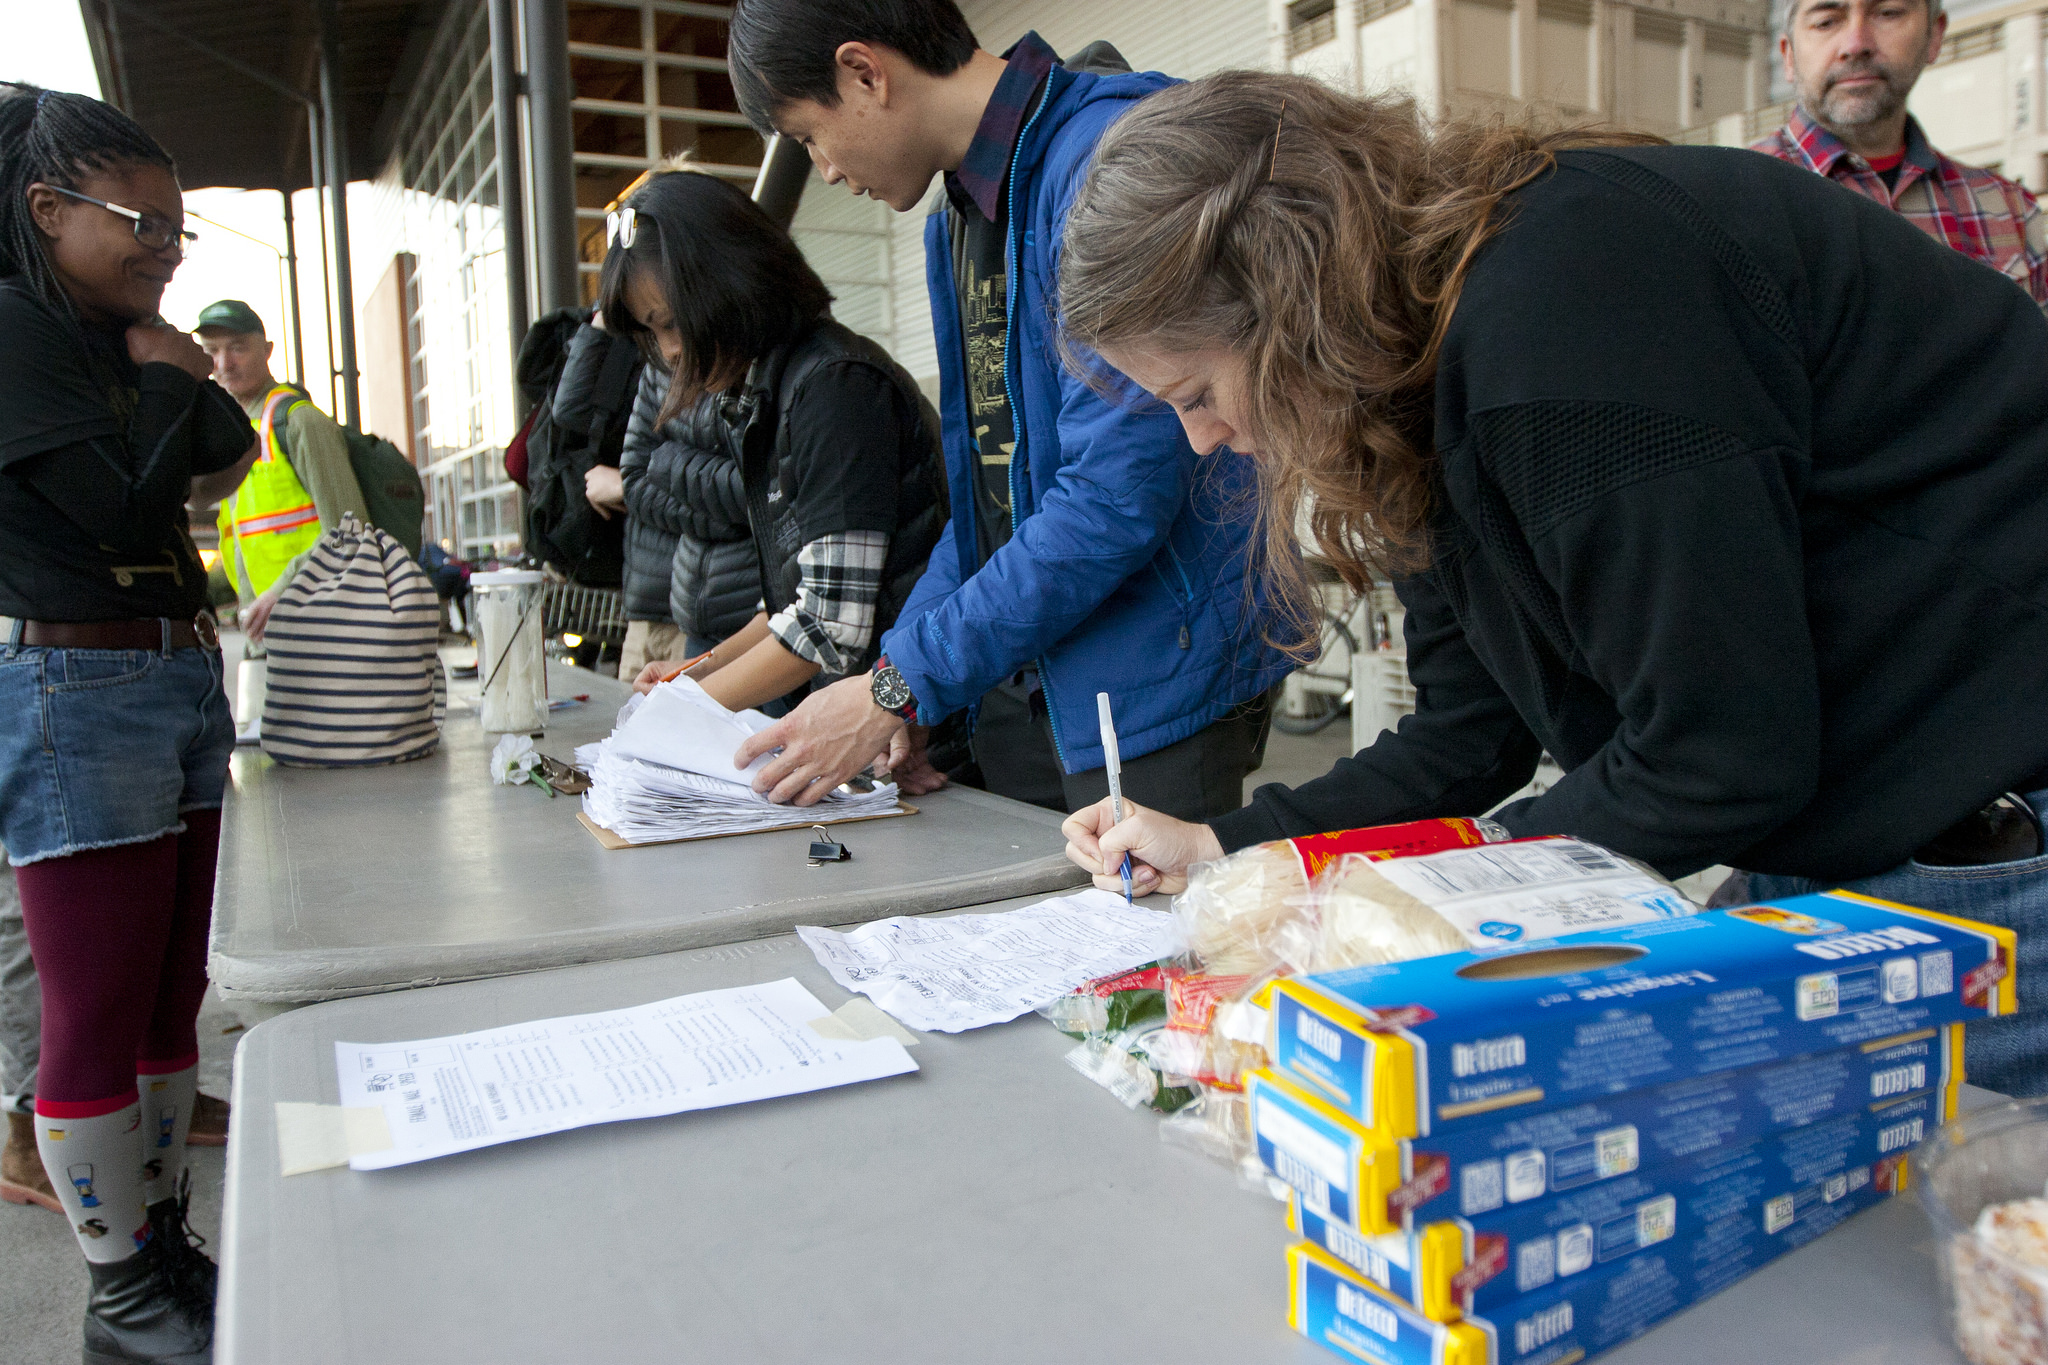 Final speed category manifests being tallied and sorted. Photo by Jonathan Koshi